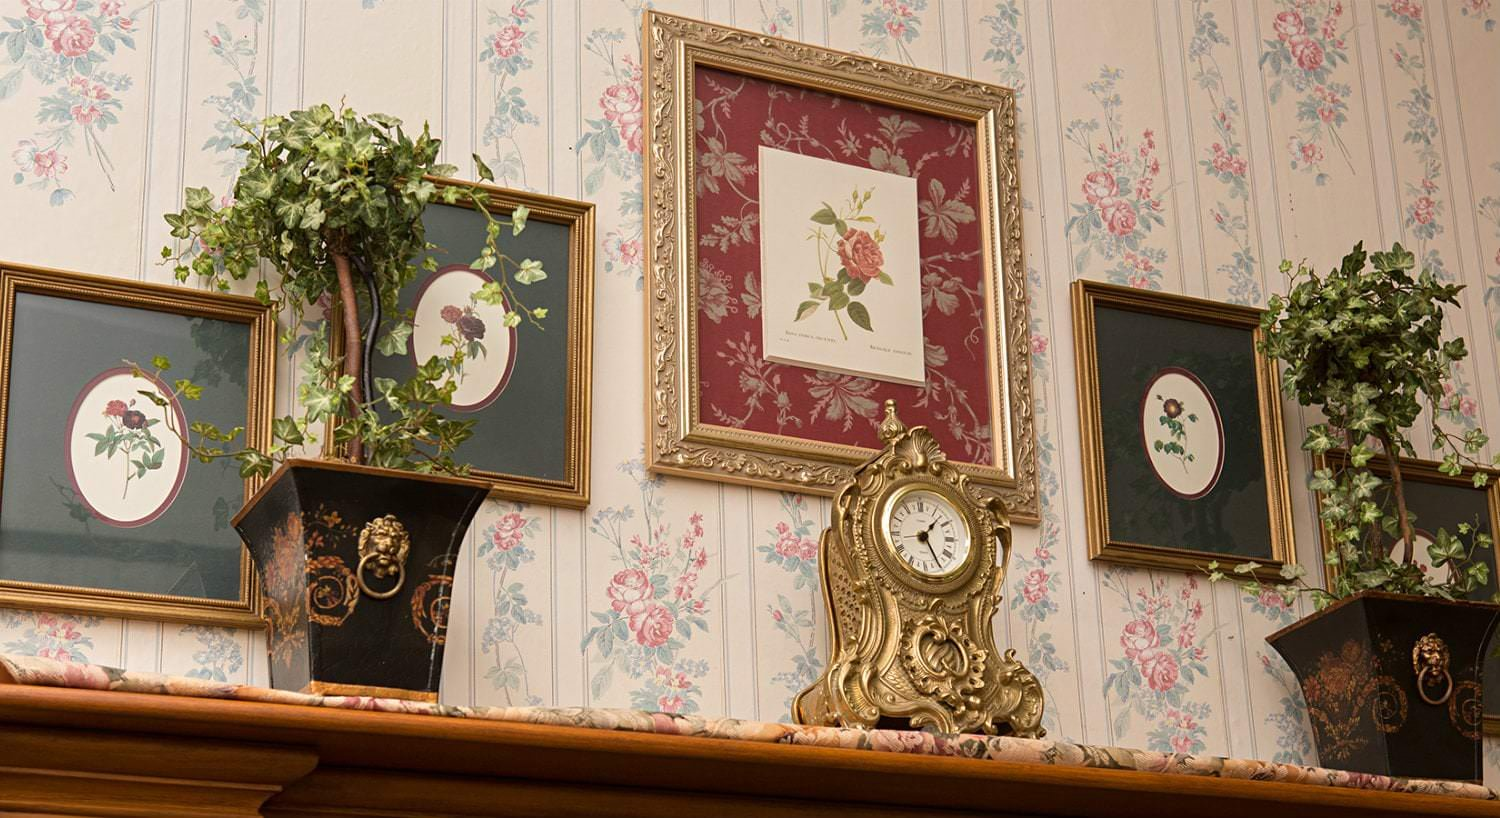 Sitting room fireplace mantel topped with gold clock, two plants in black pots, floral wallpaper with gold framed floral pictures